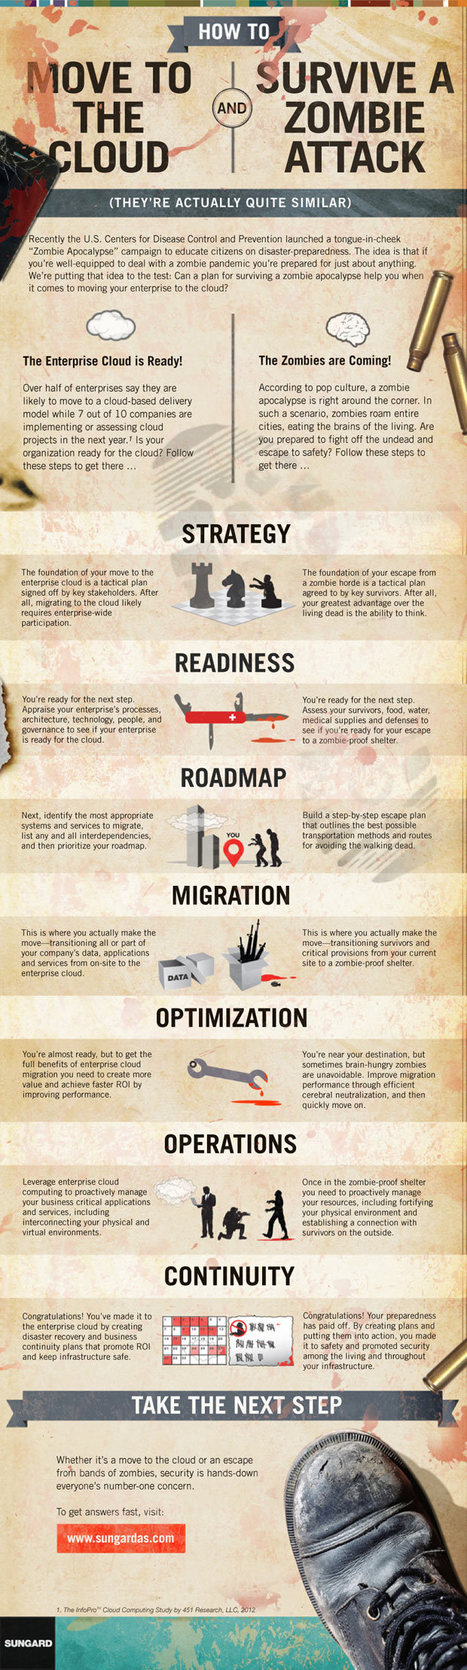 INFOGRAPHIC: How Moving to the Cloud is Similar to Surviving a Zombie Attack | MarketingHits | Scoop.it